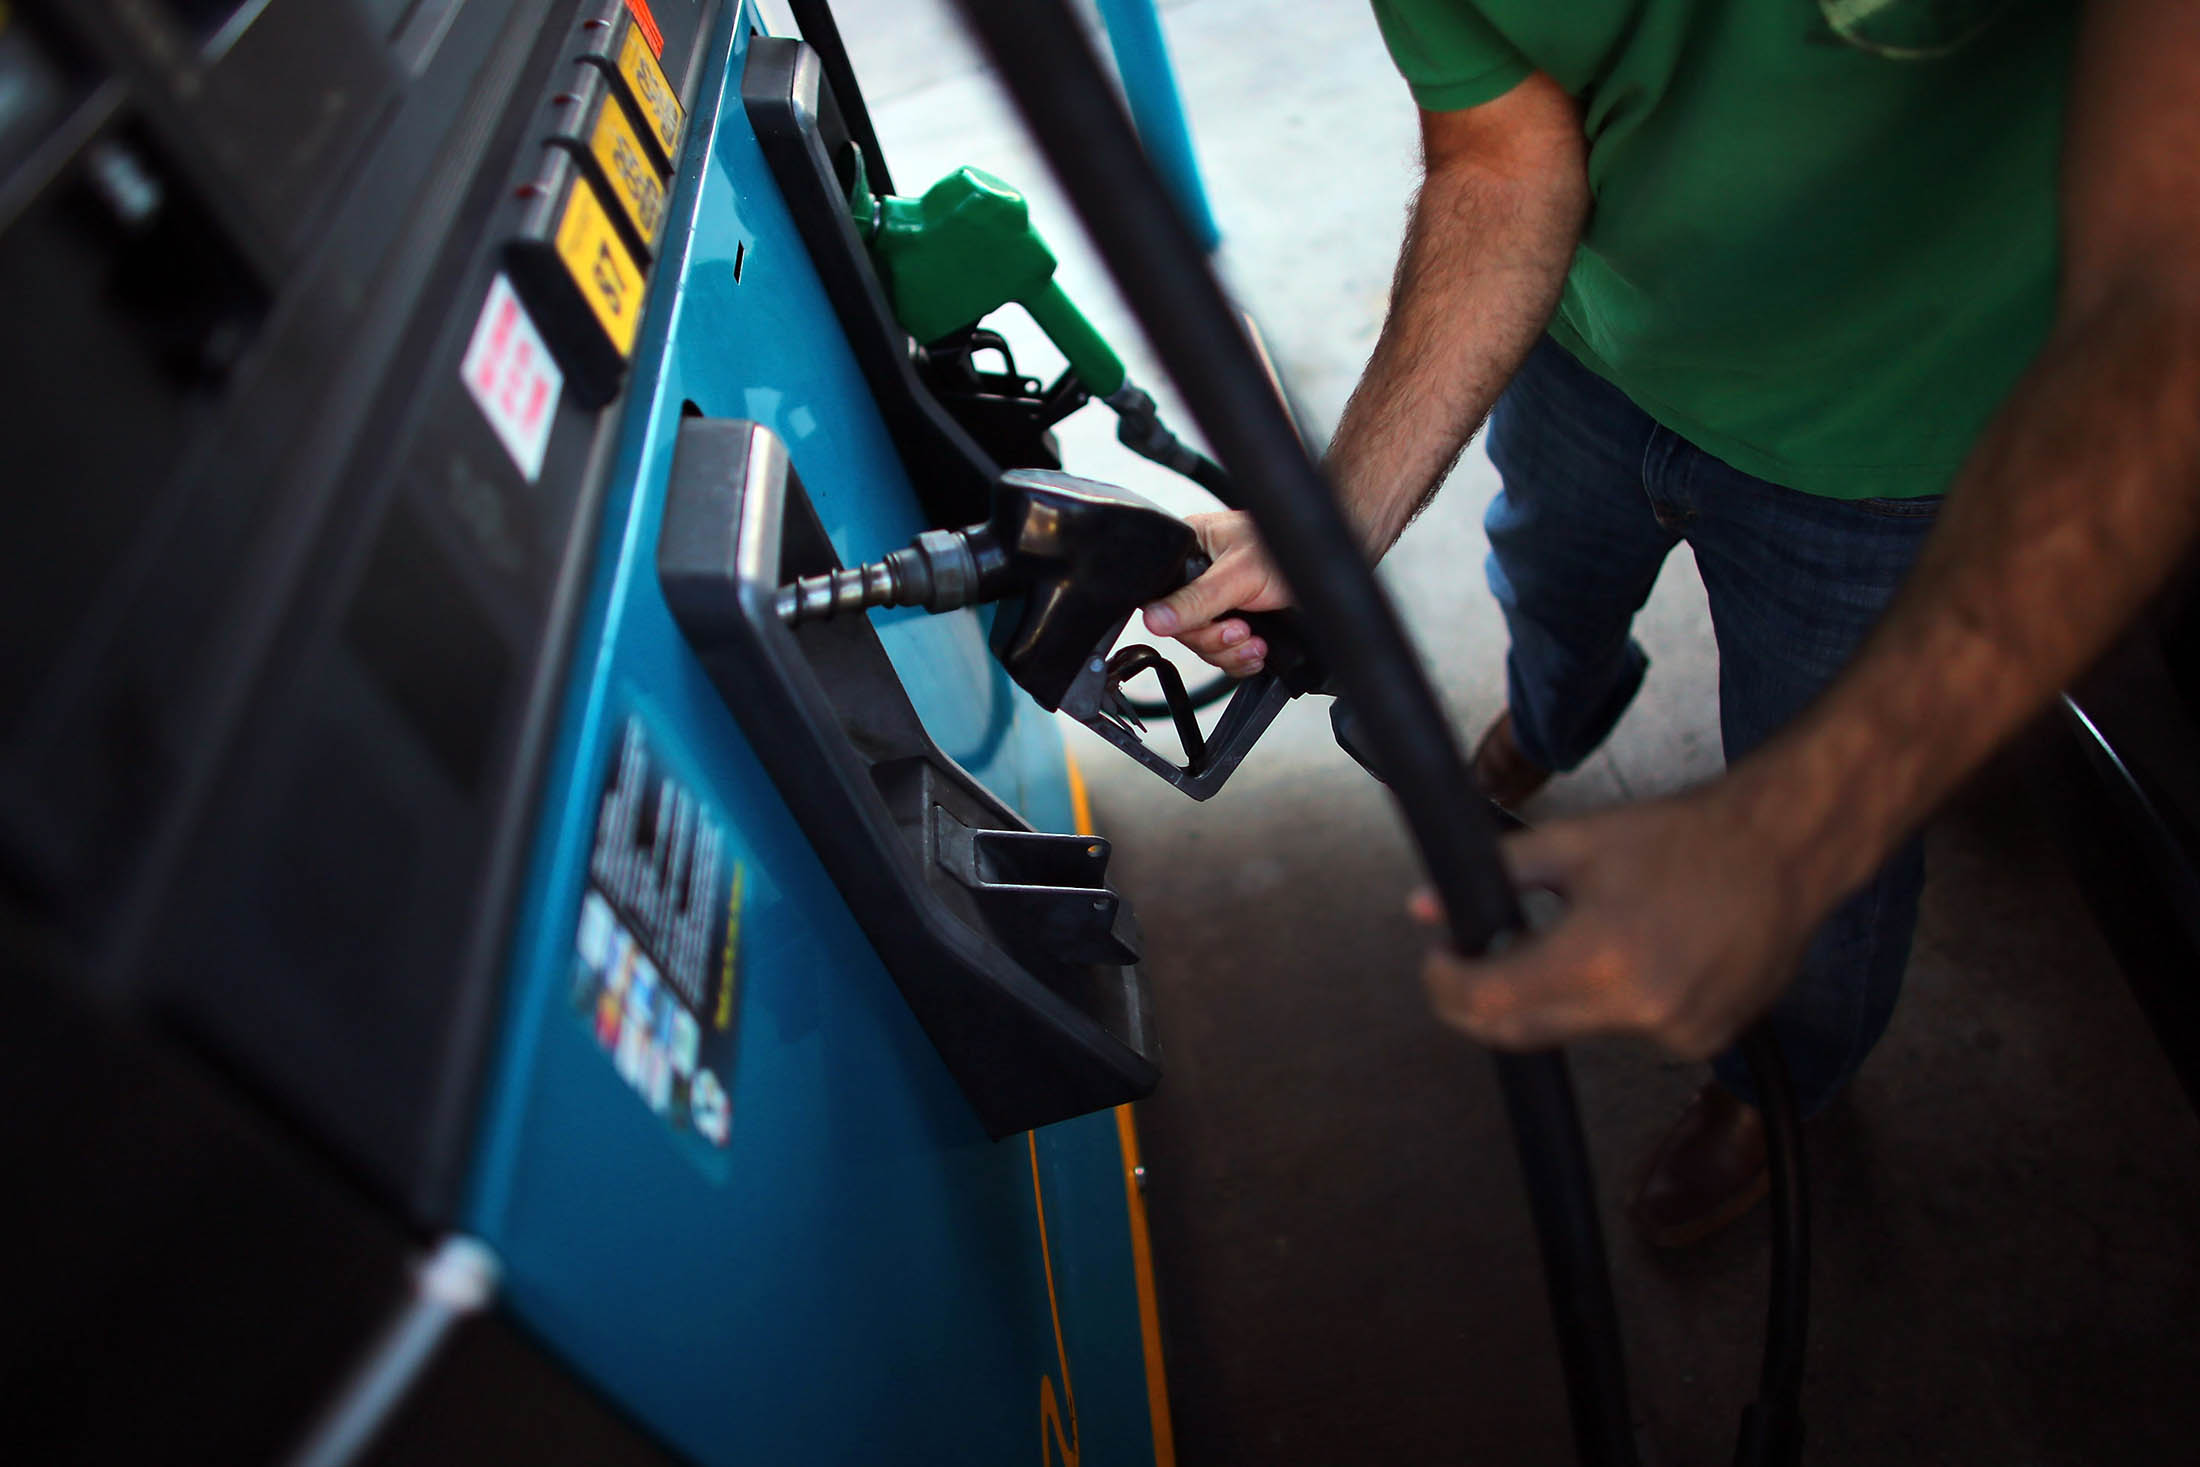 Cheap Gasoline and a 3-Day Weekend to Fuel Record July 4 Travel